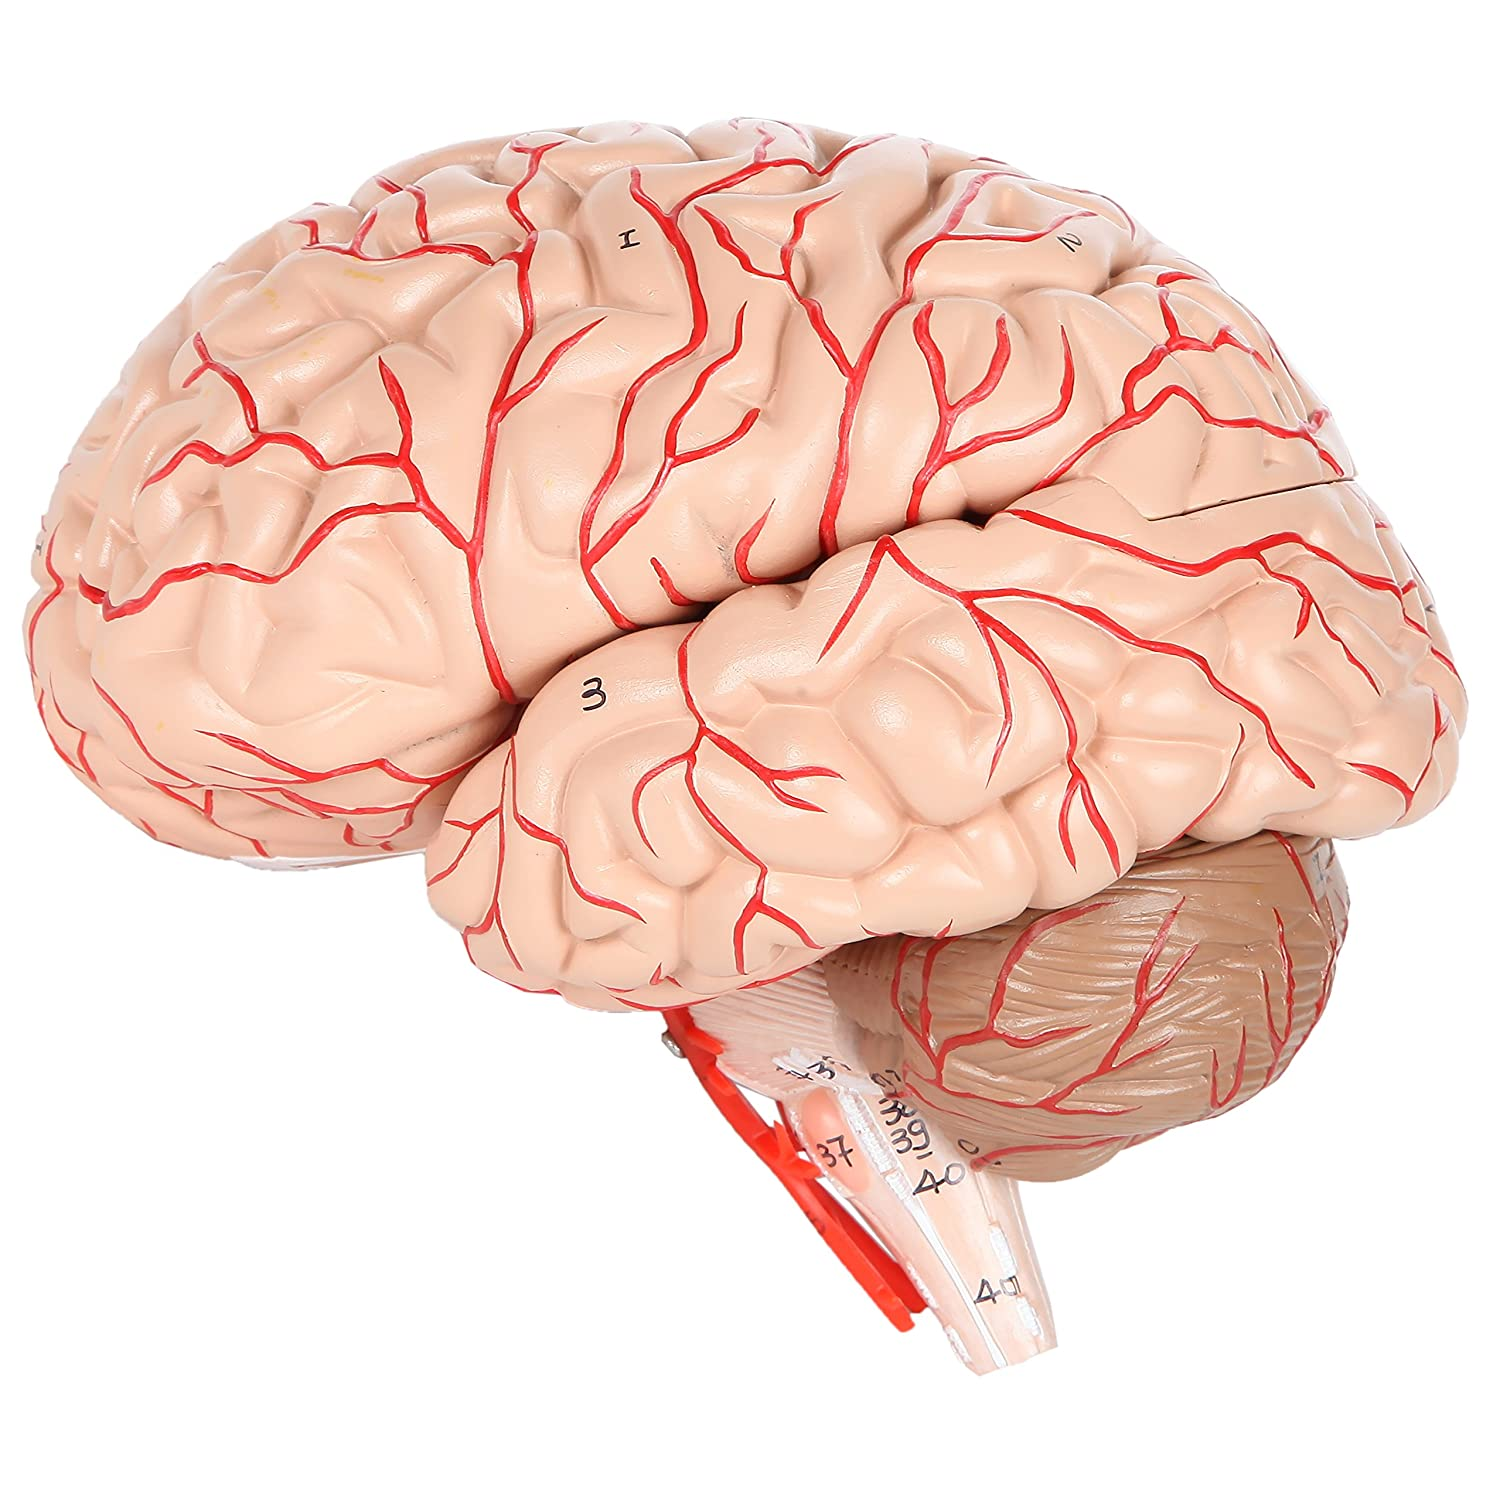 Axis Scientific Brain with Arteries Anatomy Model, Dissects into 8 ...